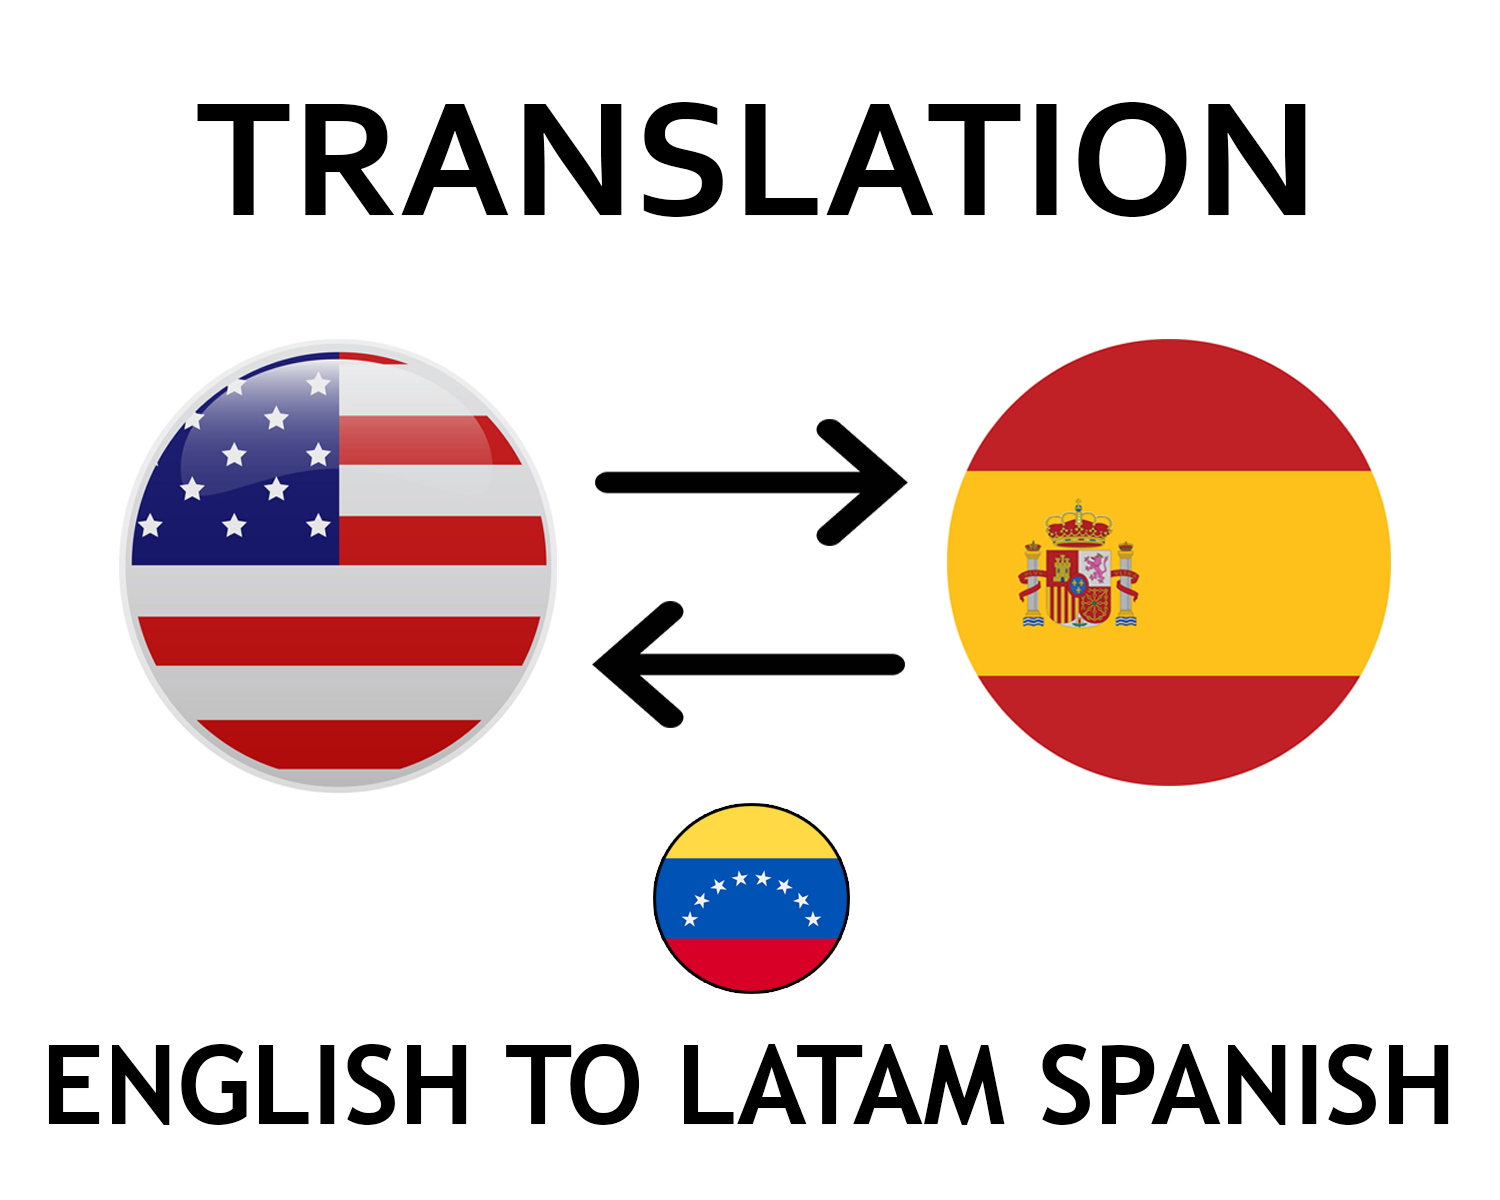 Translate 1000 words English to Spanish or vice versa for $5 - SEOClerks